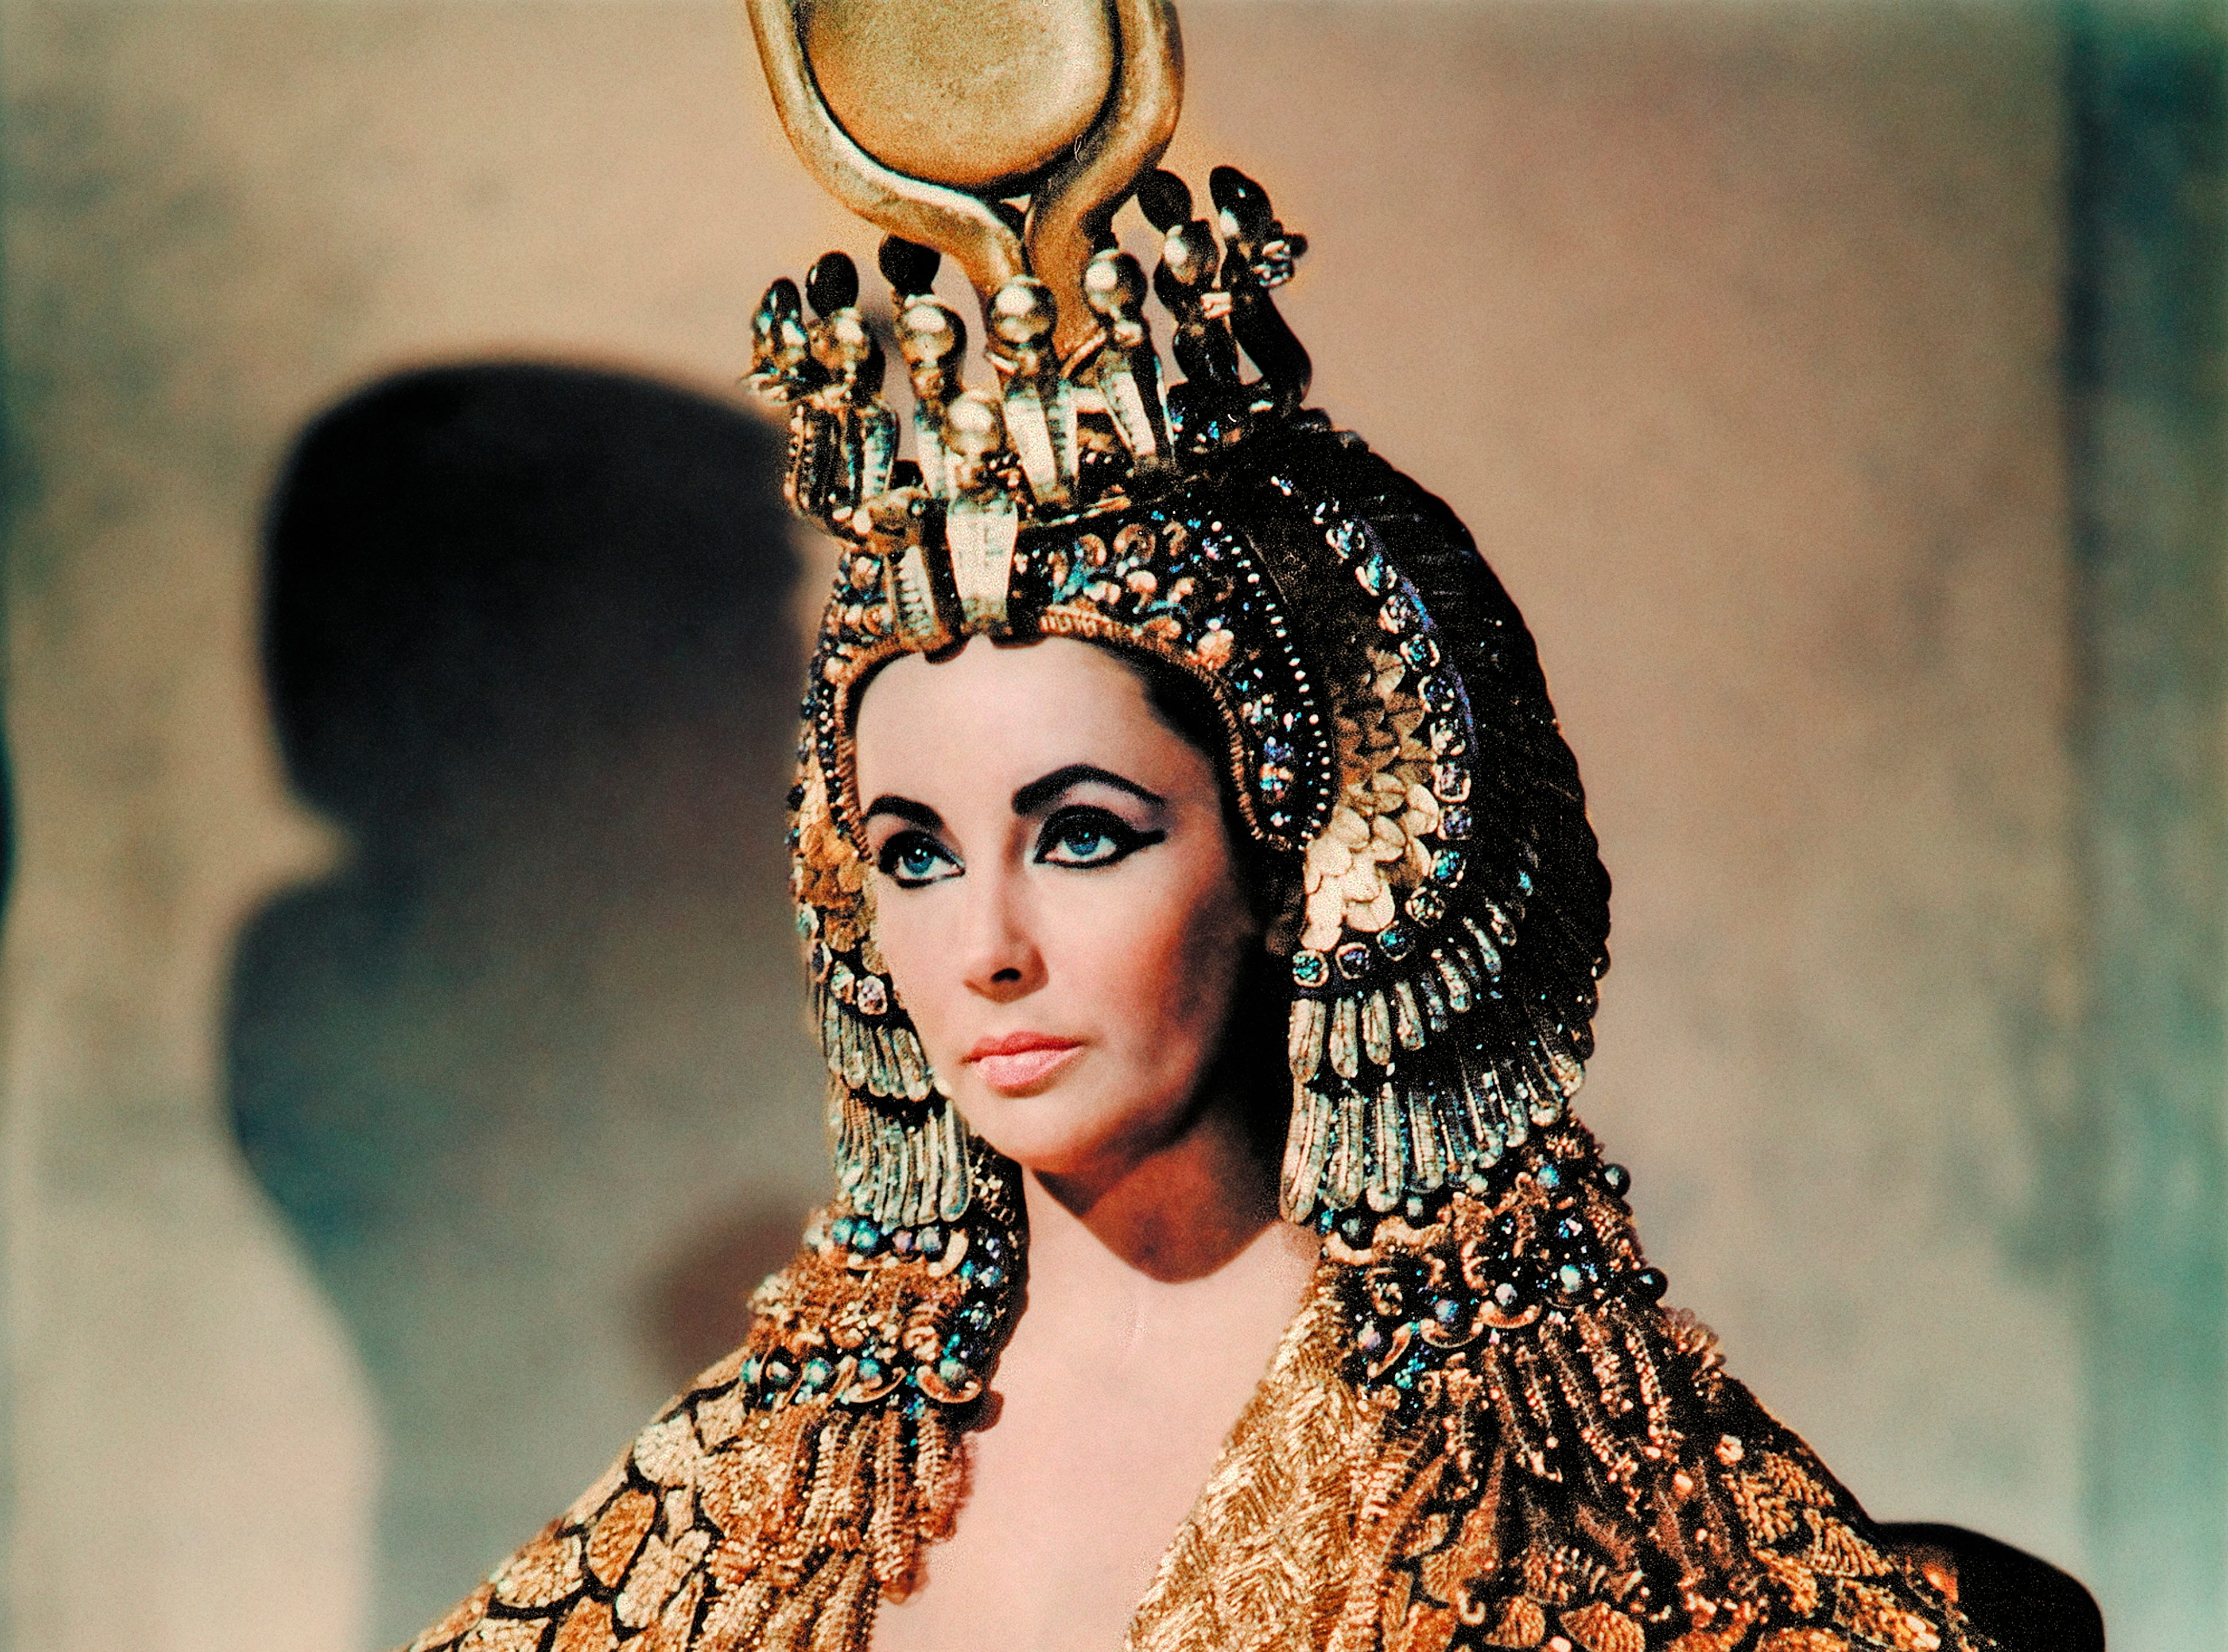 "'Cleopatra,' 1963. Variety recently called the Elizabeth Taylor-Richard Burton epic ""scandalously expensive."" Dripping in gold and with behind-the-scenes drama to boot, the movie was budgeted for $5 million. It ended up costing at least seven times that much, which Variety estimated cost about $350 million adjusted in 2017."